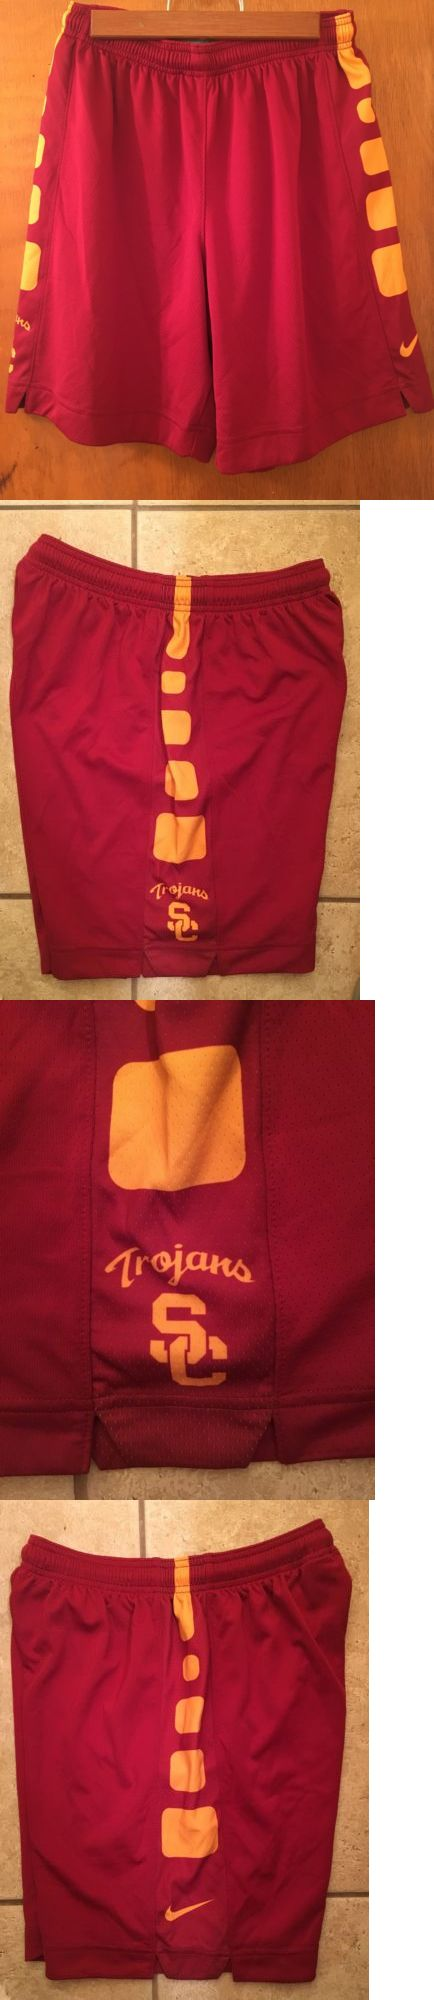 Basketball-Other 205: Usc Trojans, Official Nike Team Women S Shorts, College, Size Medium M -> BUY IT NOW ONLY: $50 on eBay!